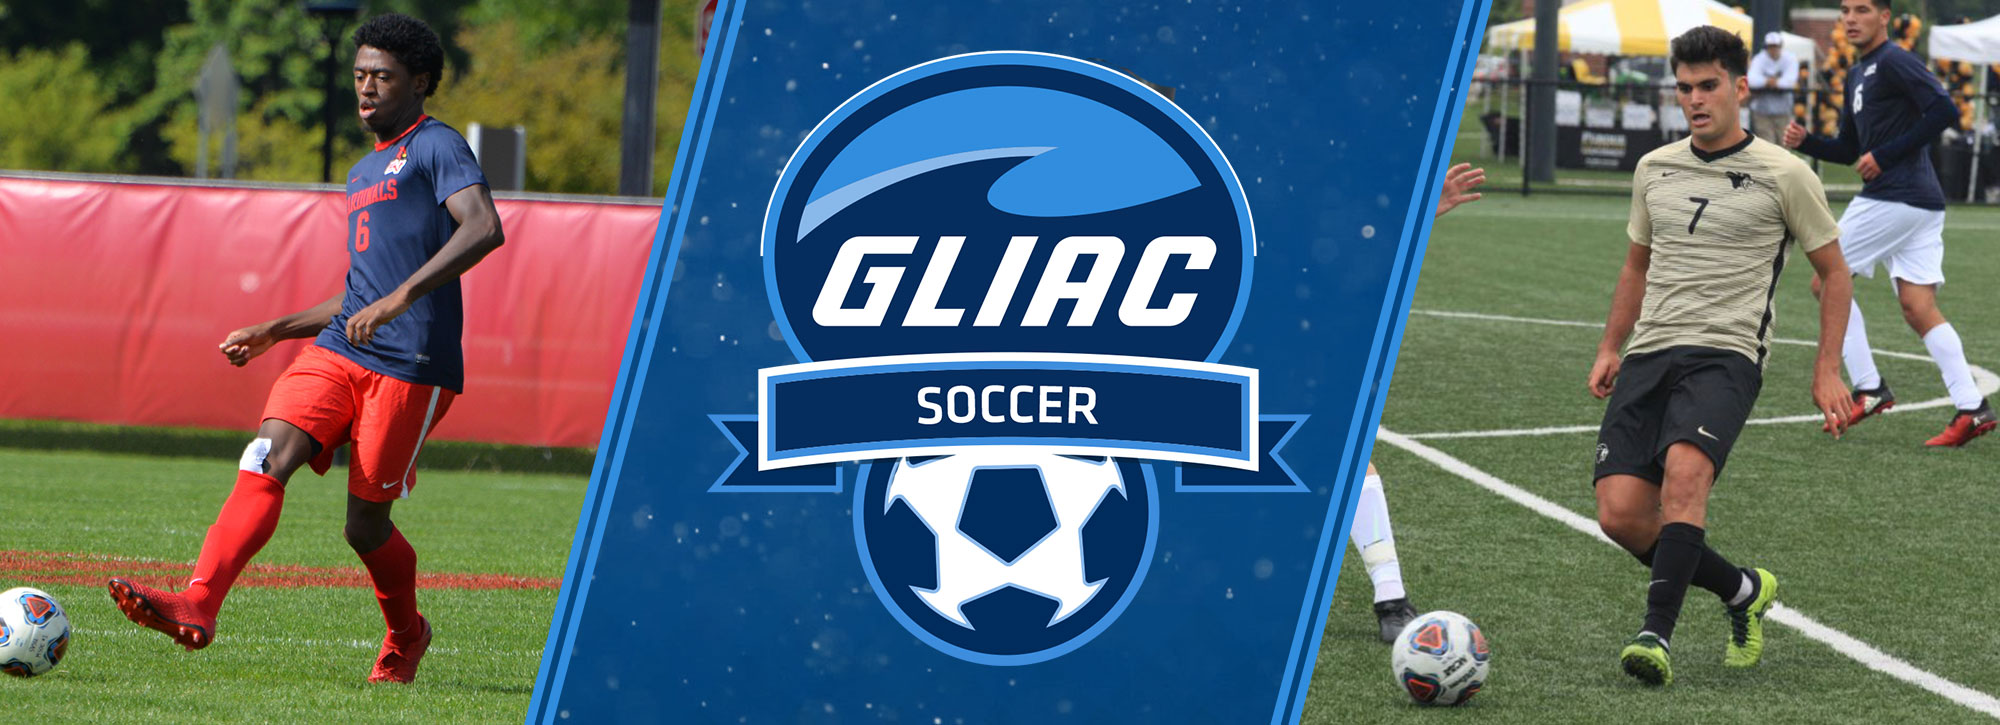 Purdue Northwest's Serna, Saginaw Valley's Sinclair Collect GLIAC Men's Soccer Weekly Honors